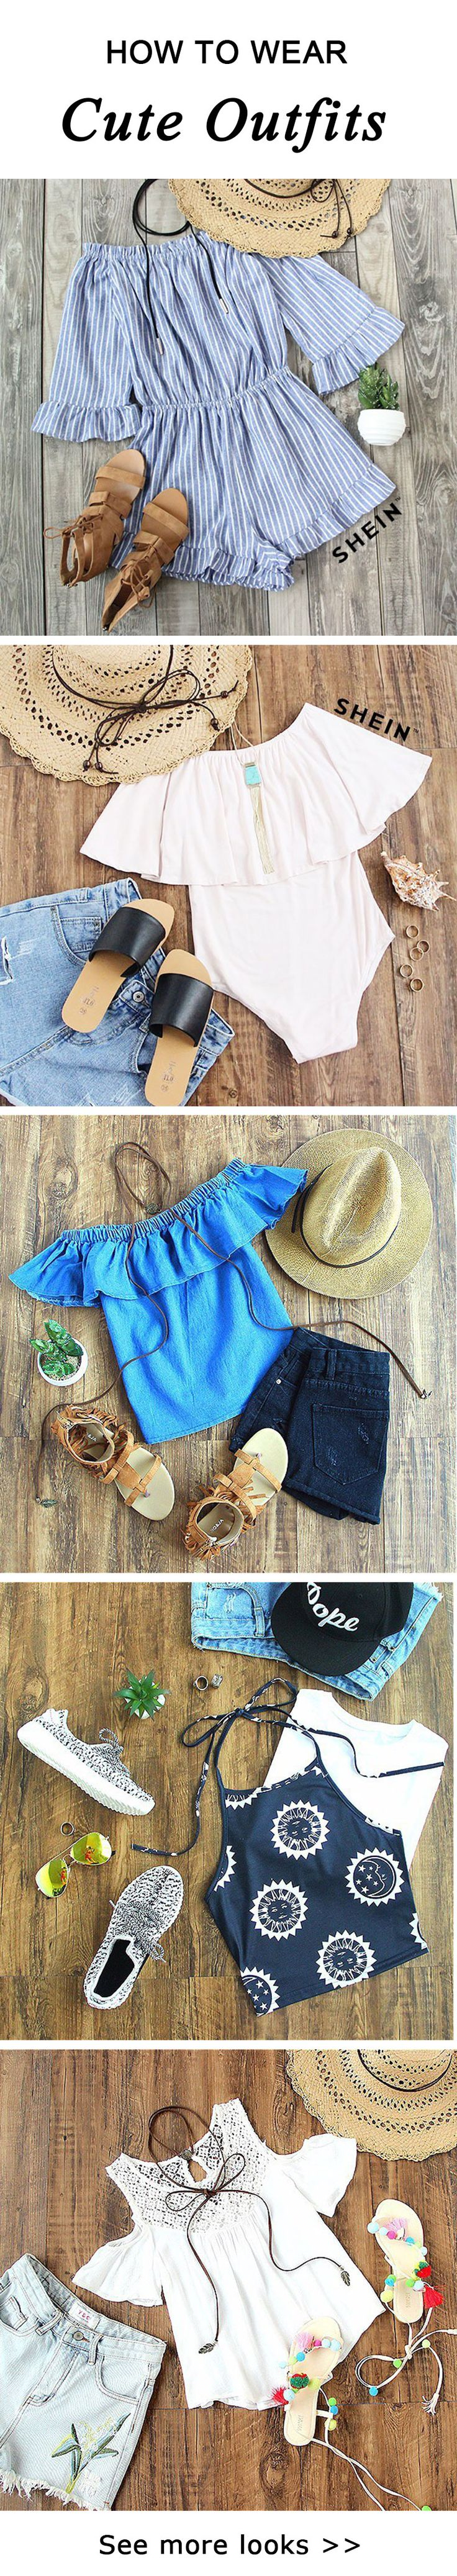 How to wear cute outfit